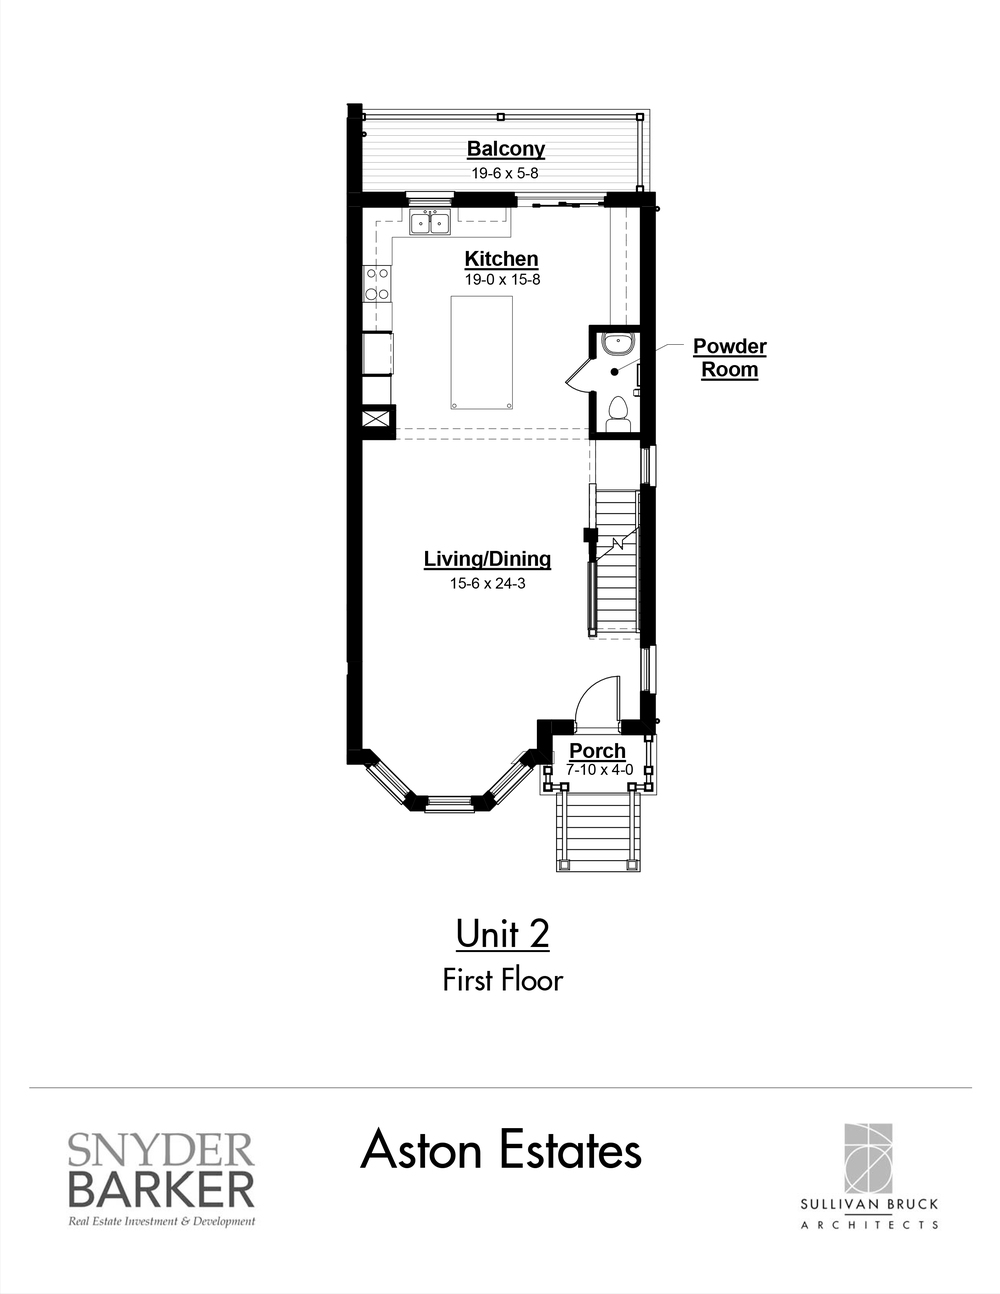 Aston_Estates_Unit_2_First_Floor.jpg